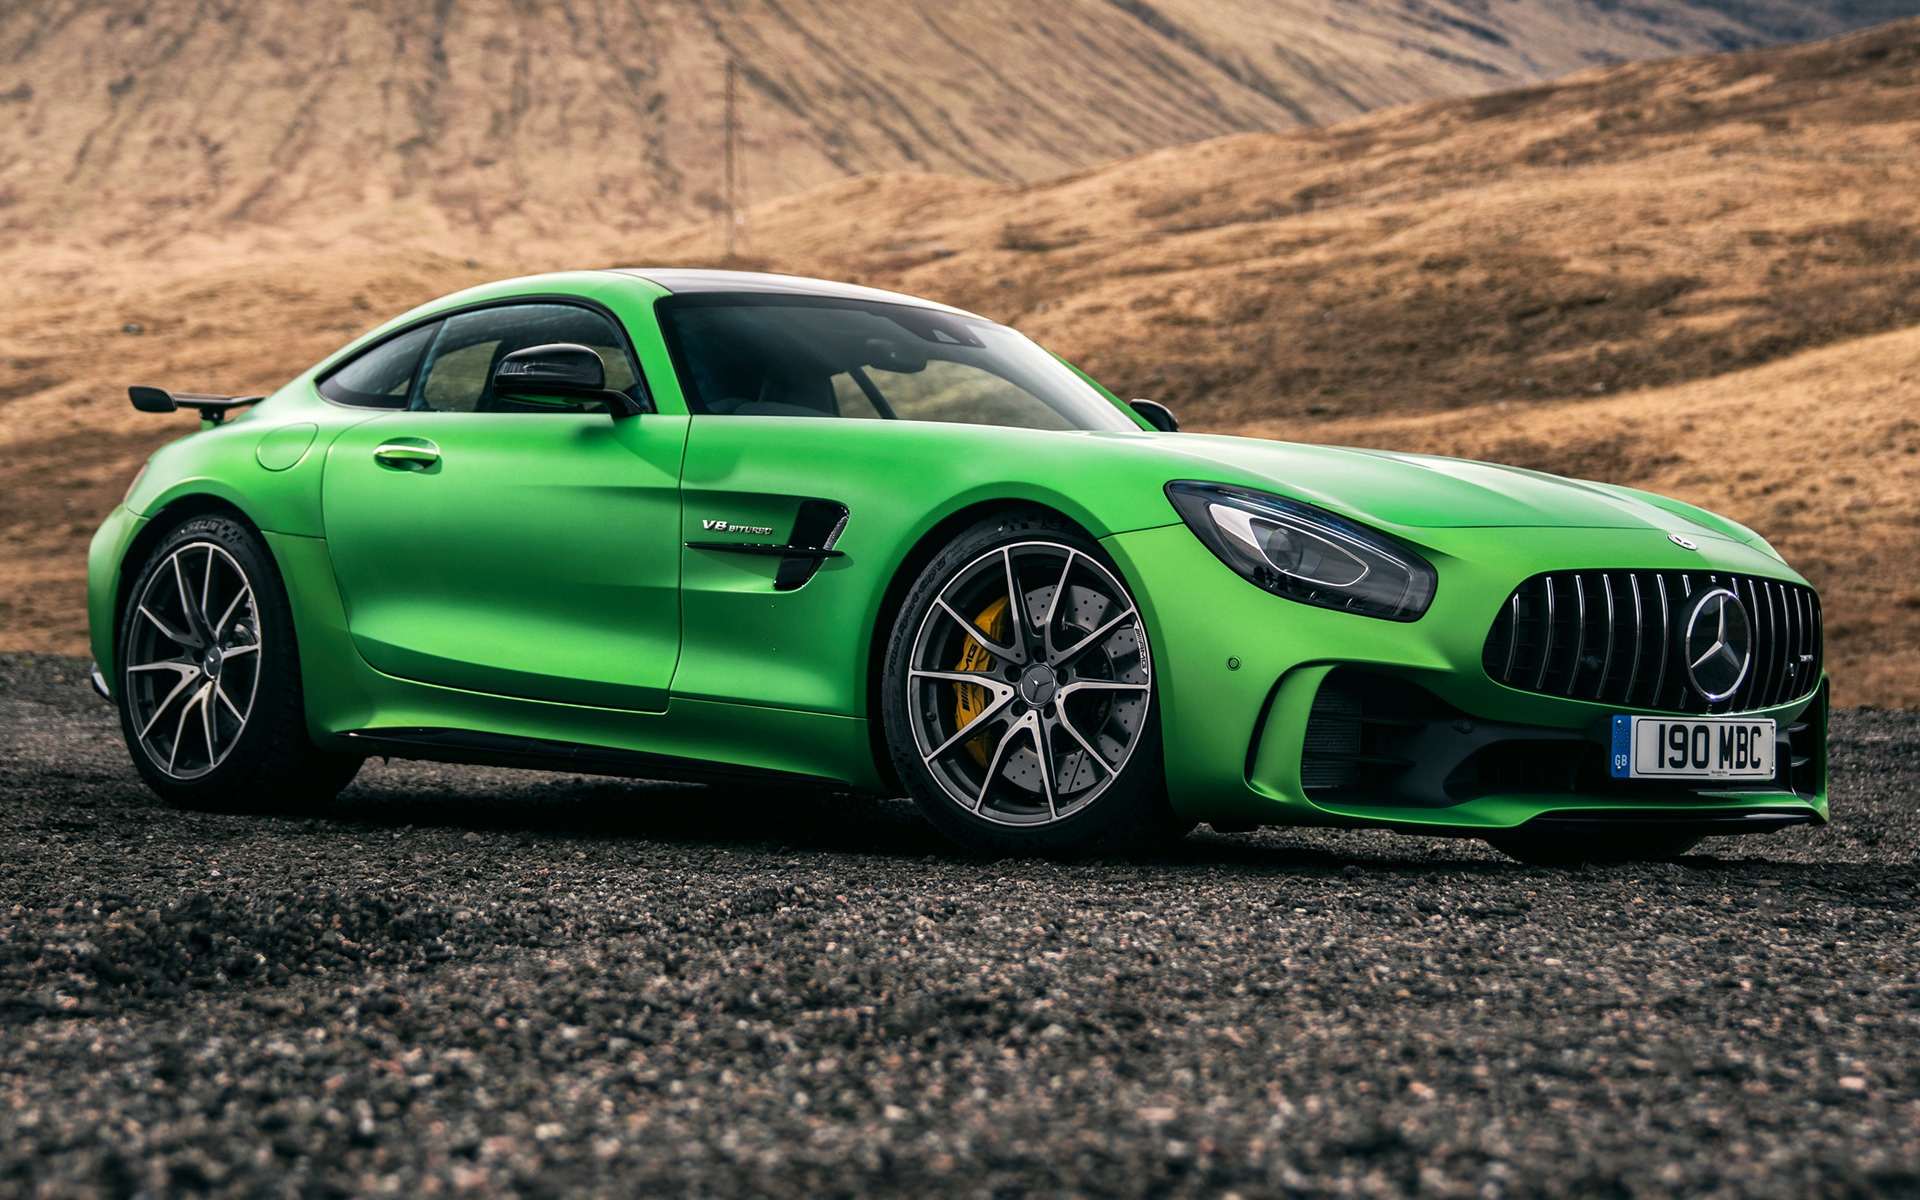 https://www.carpixel.net/w/dd6354a0248a6b31f2bd76fda88e9ebd/mercedes-amg-gt-r-car-wallpaper-65539.jpg